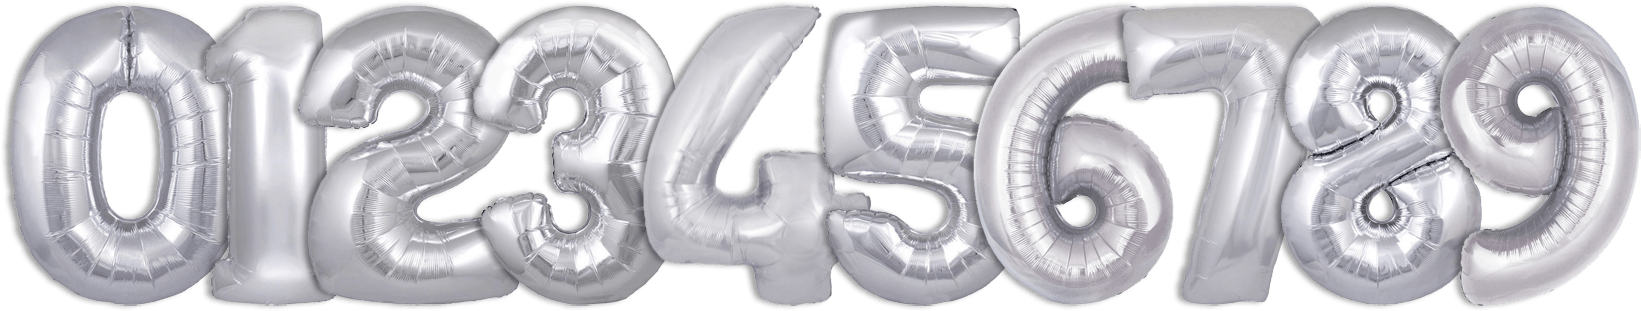 silver helium balloon numbers